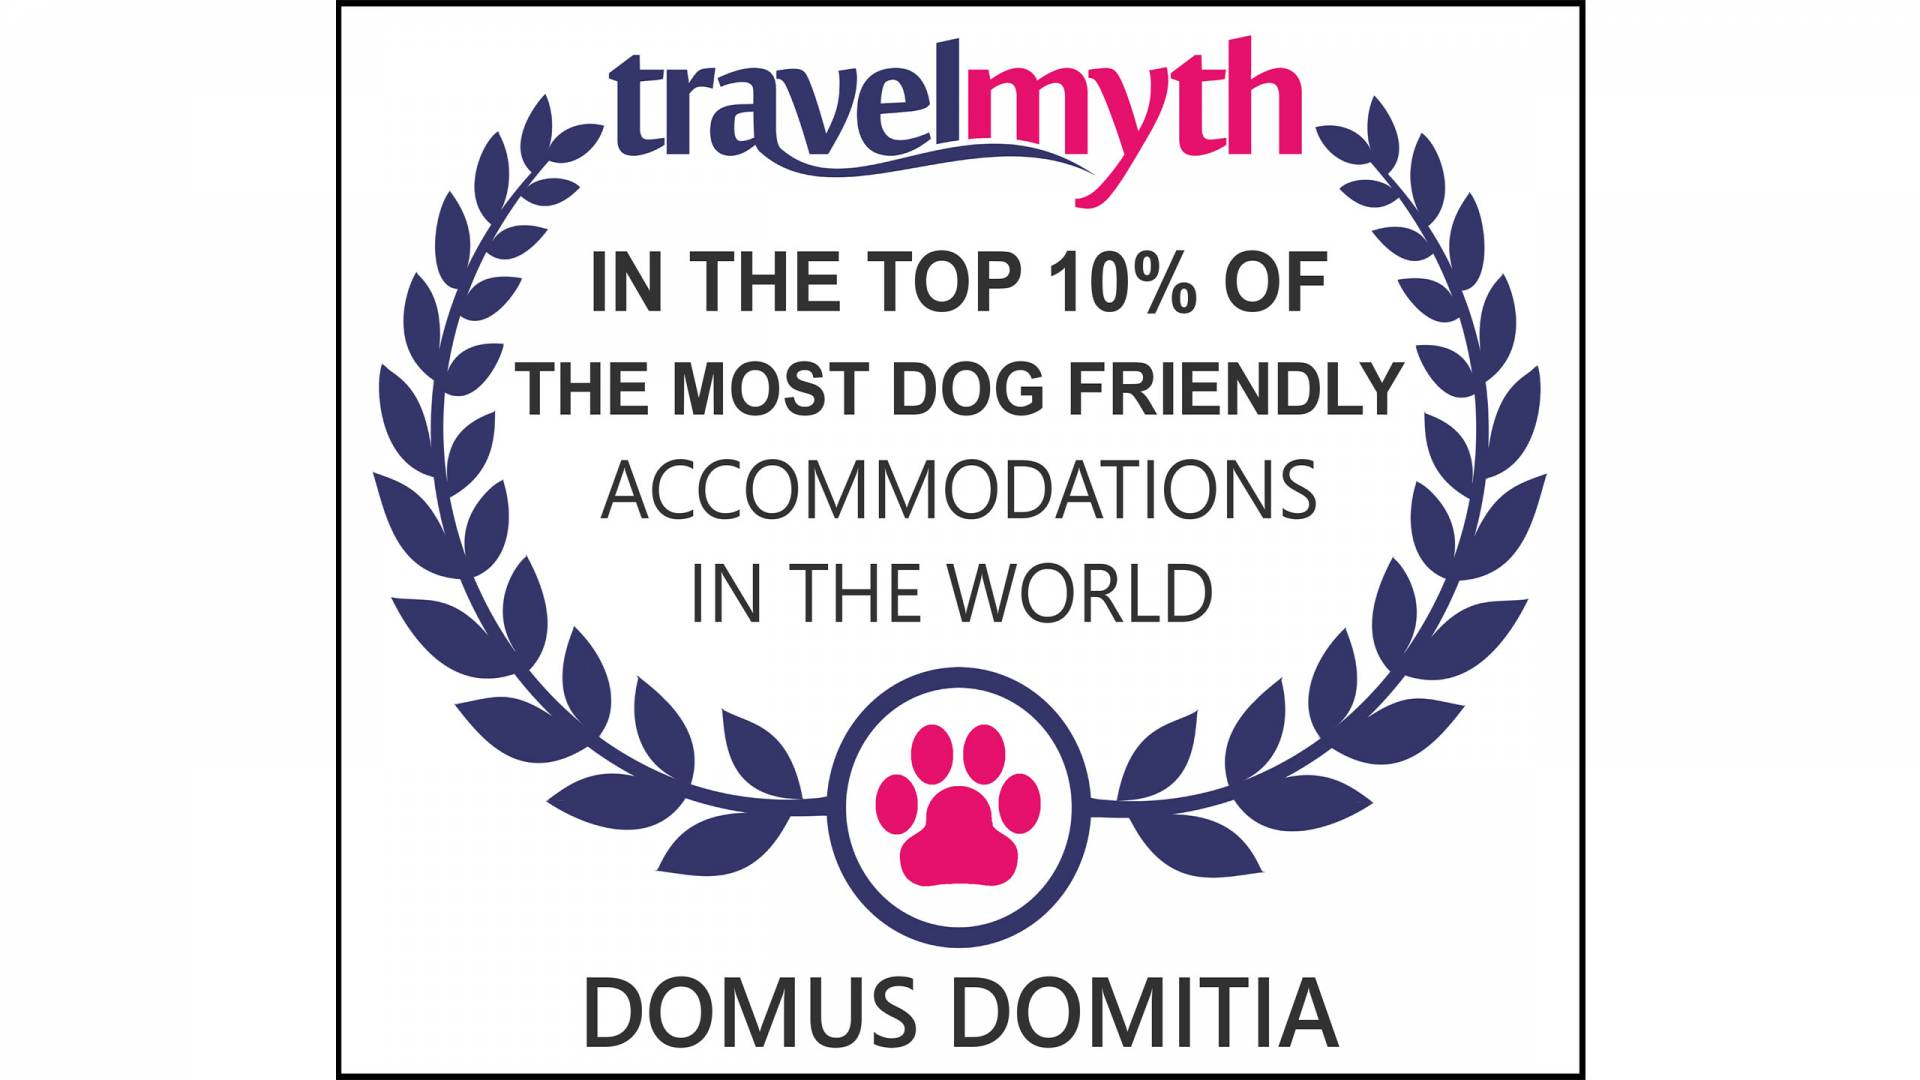 domus-domitia-logo-pet-friendly